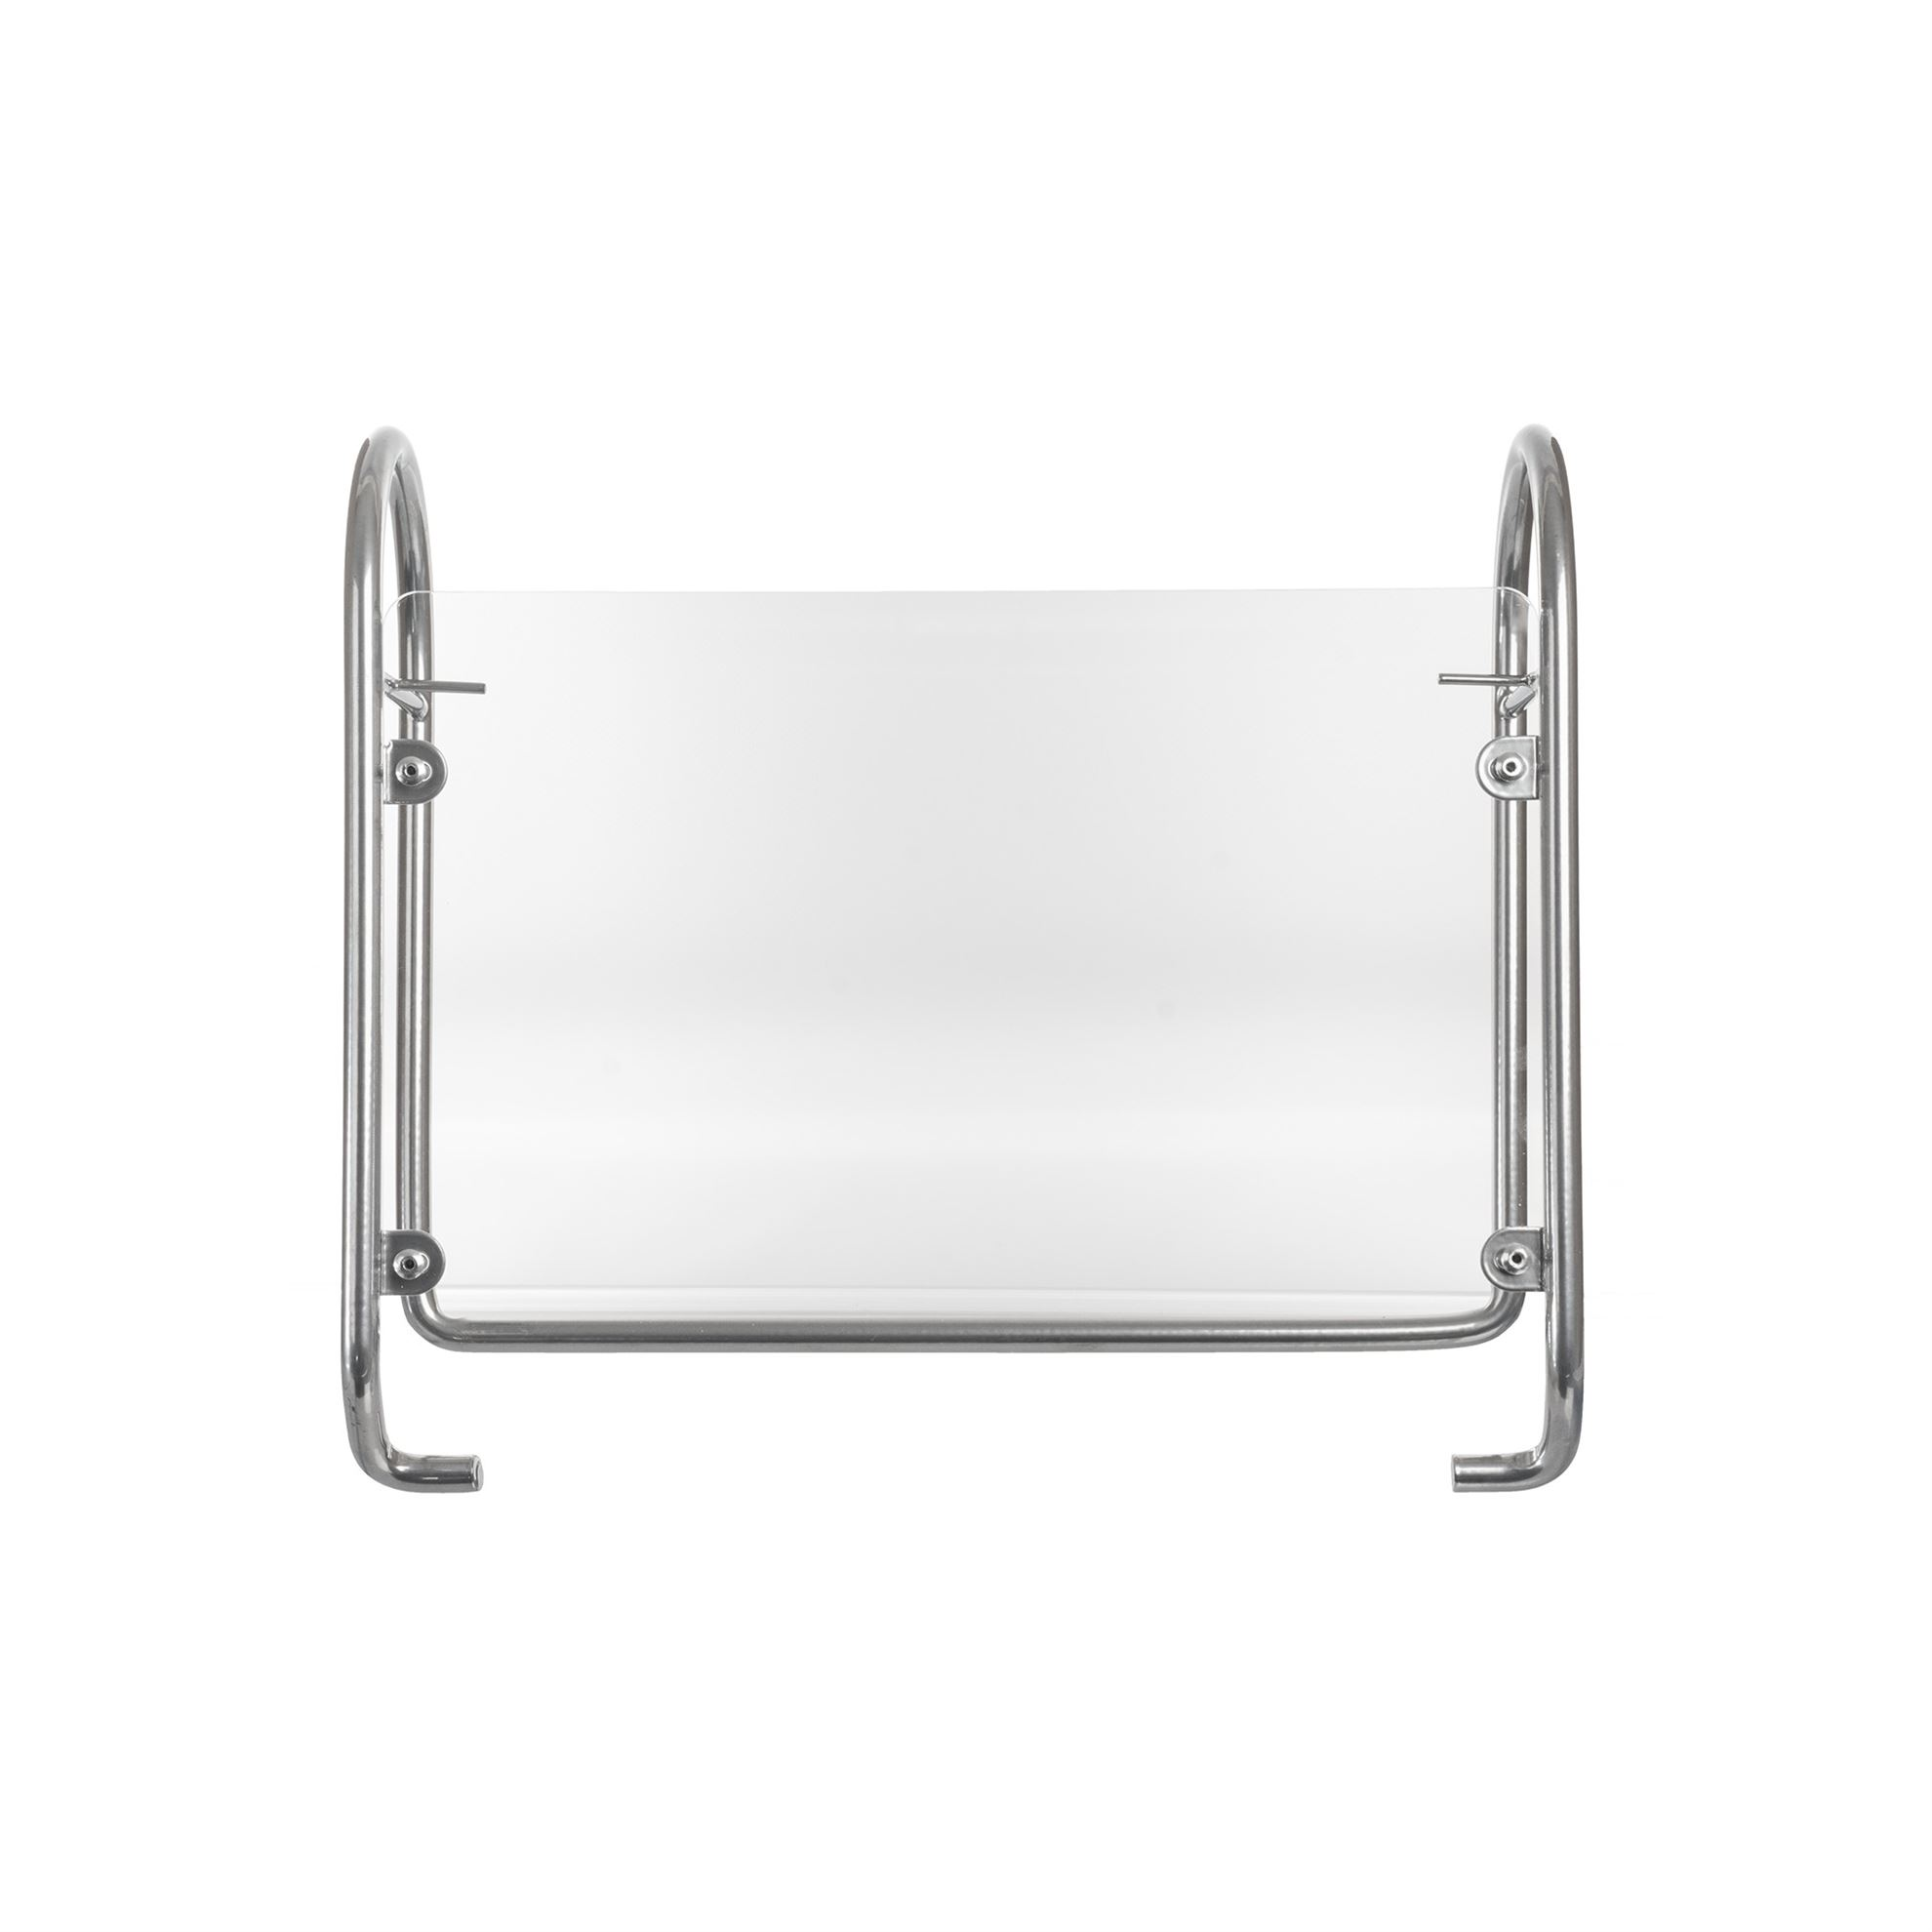 R-Go Steel Essential Monitor Stand, silver - 2